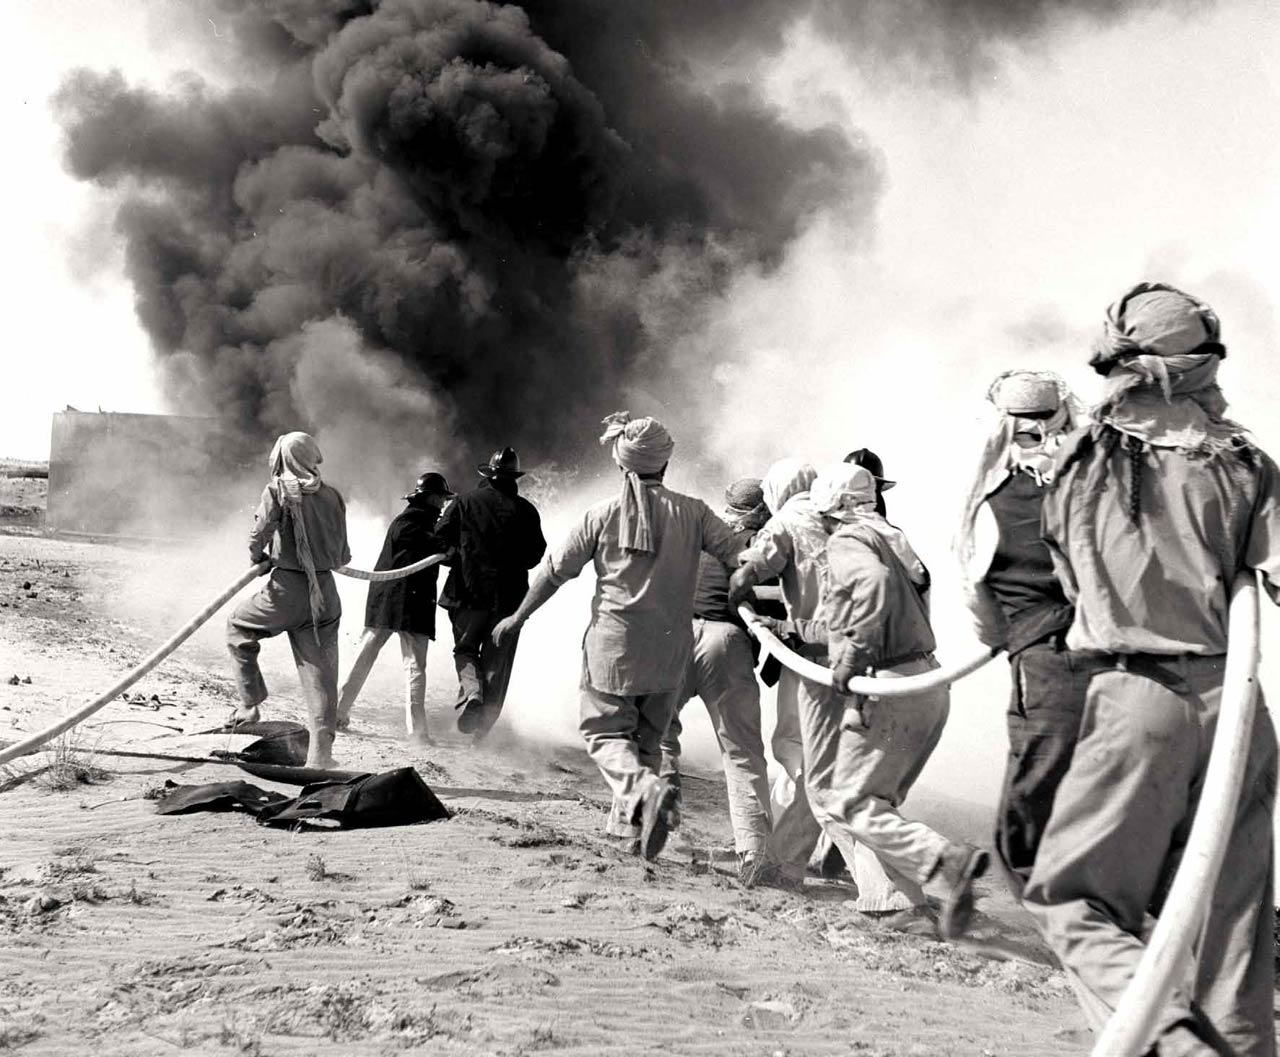 During the 1950s, firefighters practiced their skills in drills at the Dhahran testing ground, lowering accident frequency rates from 42.2 disabling injuries per million work hours in 1947 to 8.2 in 1953. (Photo: T.F. Walters)